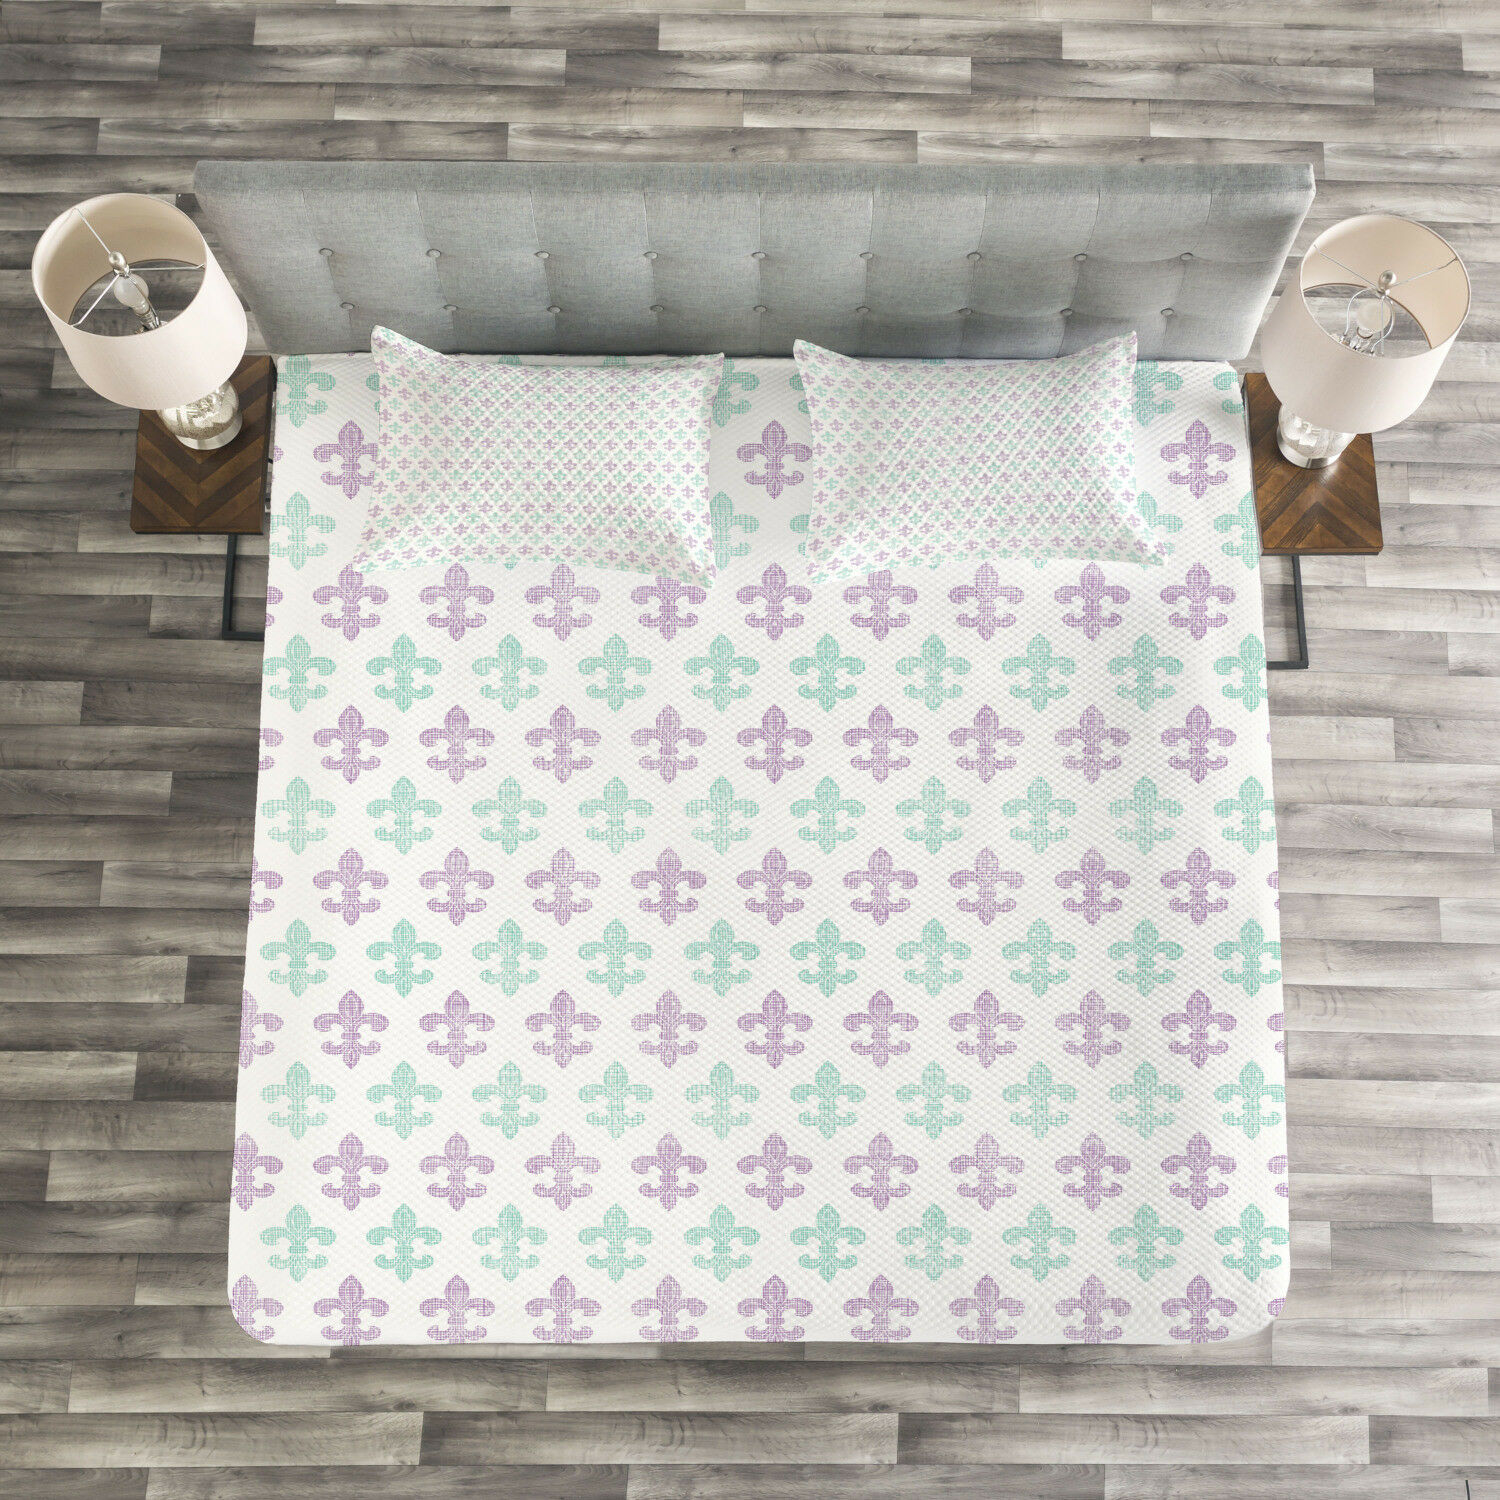 Fleur De Lis Quilted Bedspread & Pillow Shams Set, Grunge Pastel Look Print